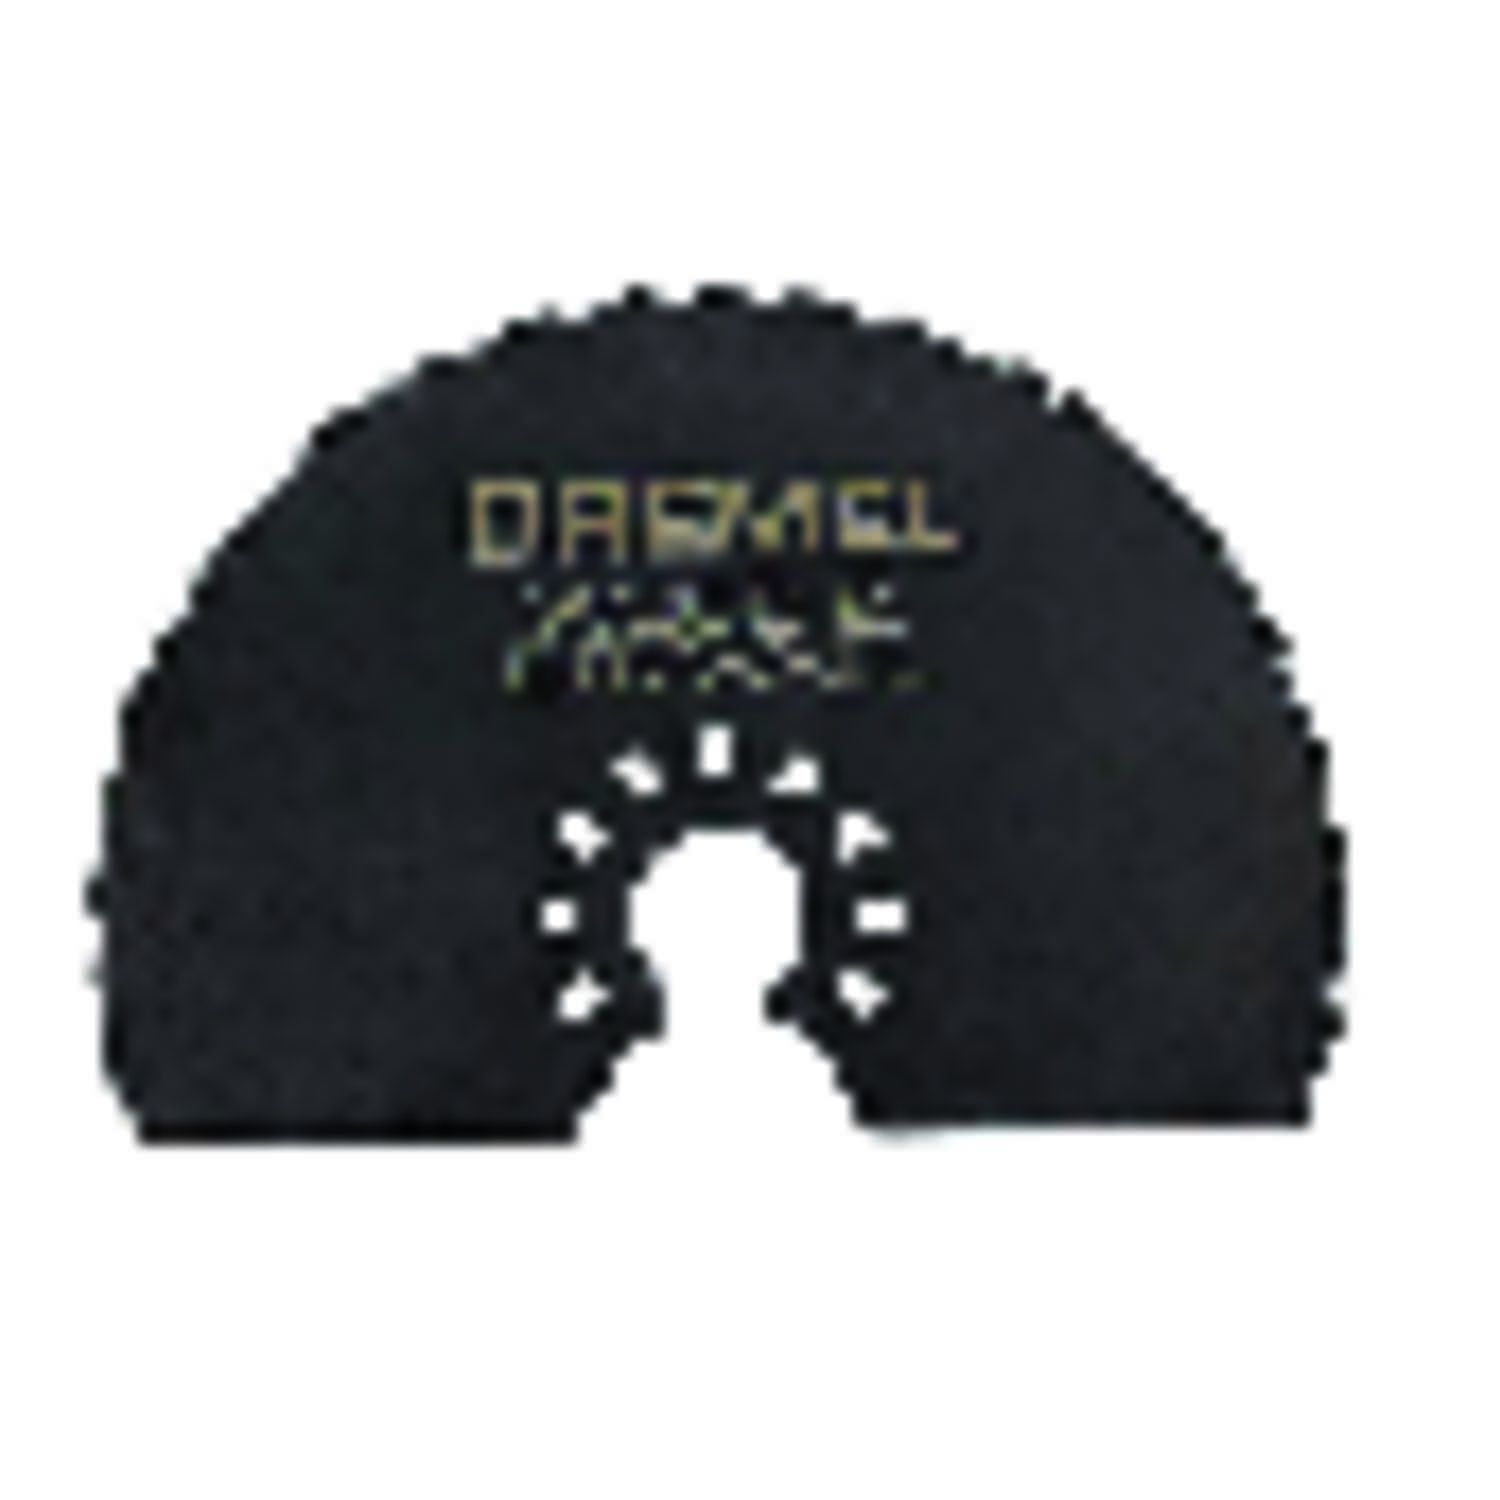 Dremel  Multi-Max  3.5   x 3 in. L Steel  Drywall Saw Blade  1 pk